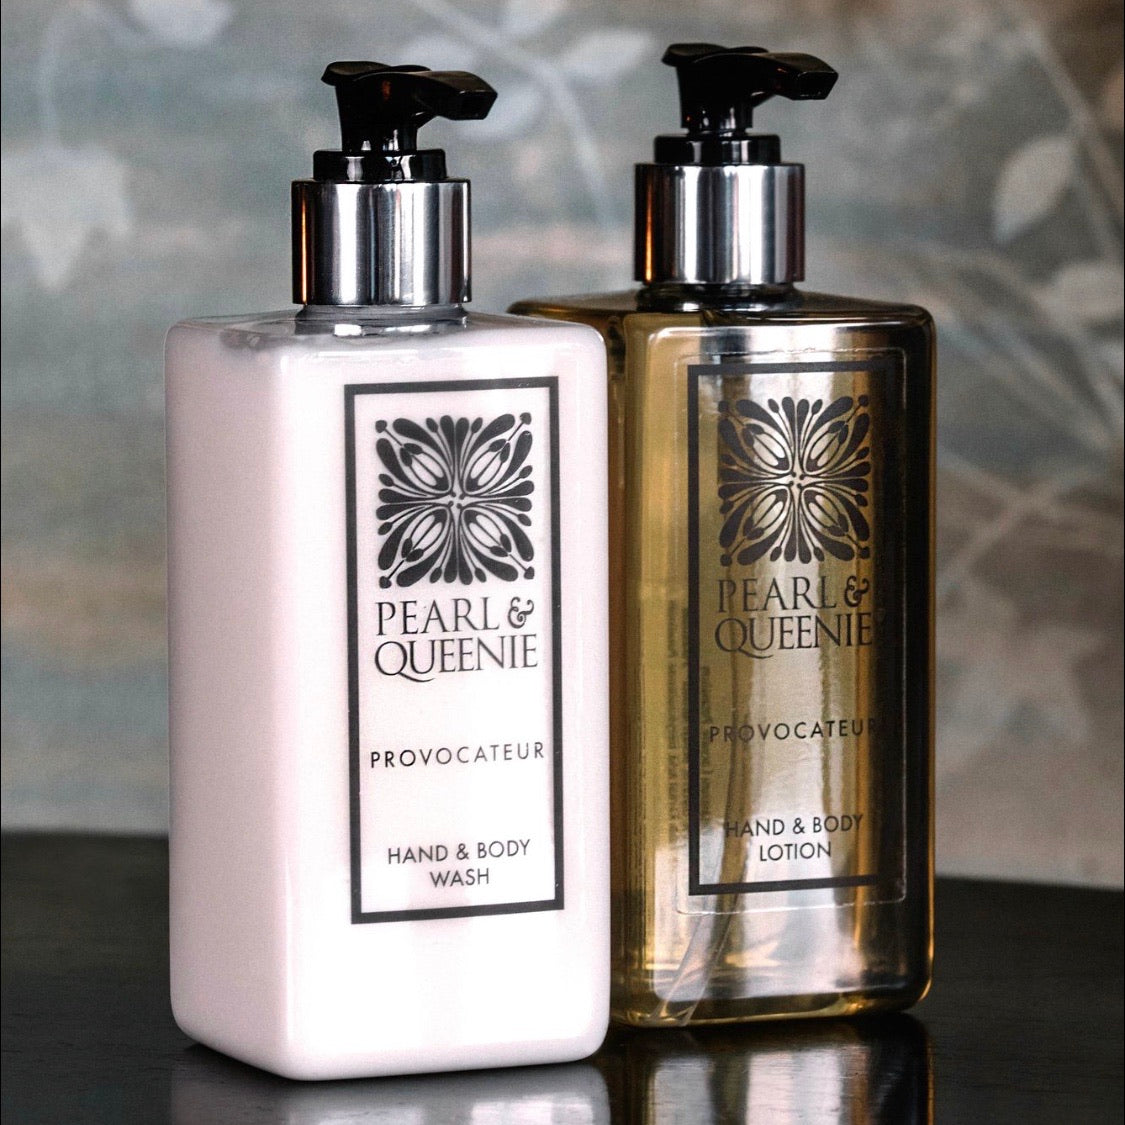 Luxury Hand & Body Wash by Pearl & Queenie